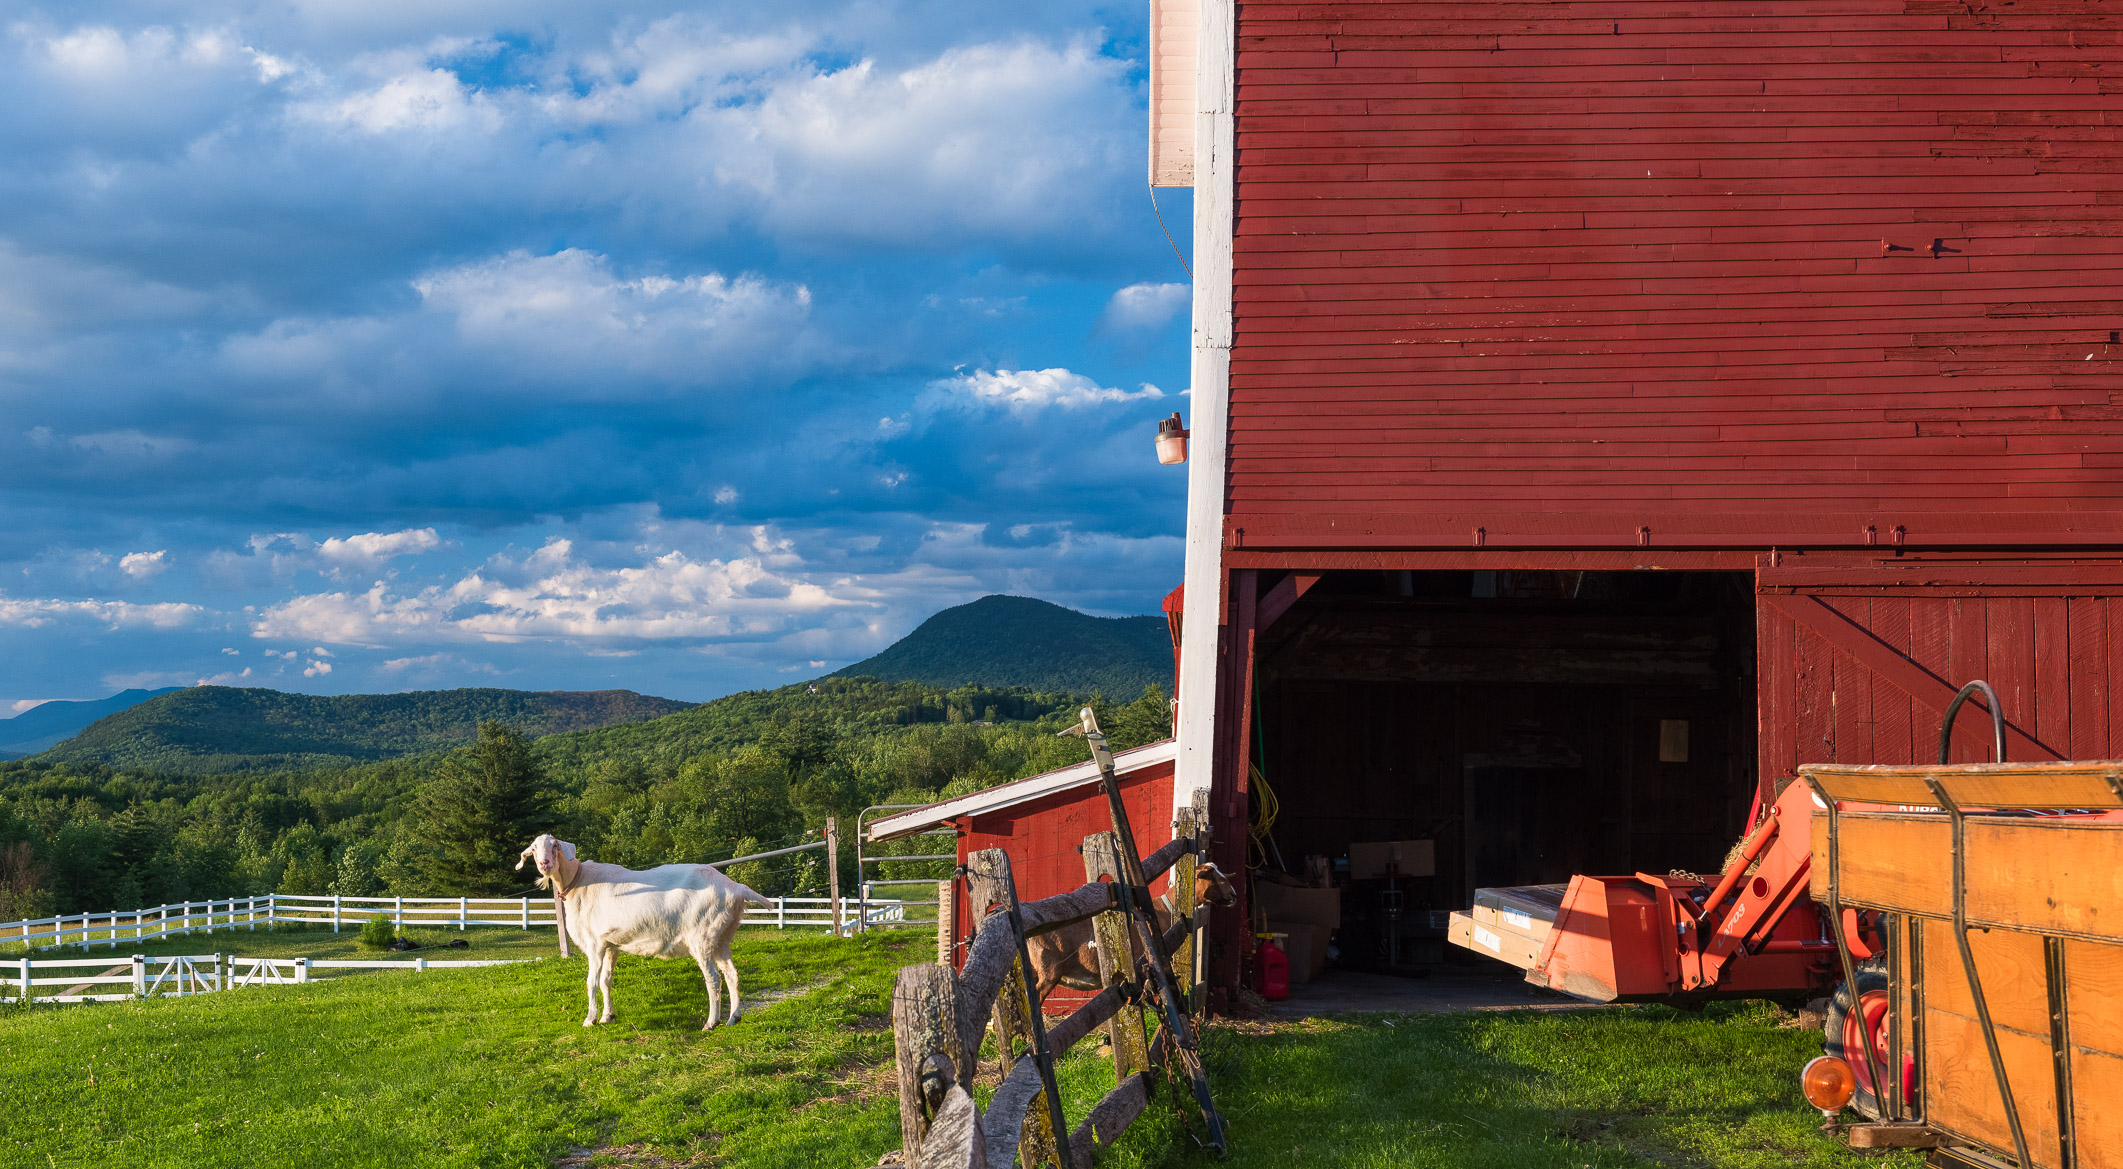 Goats at Mountain Valley Farm, Waitsfield, Vermont